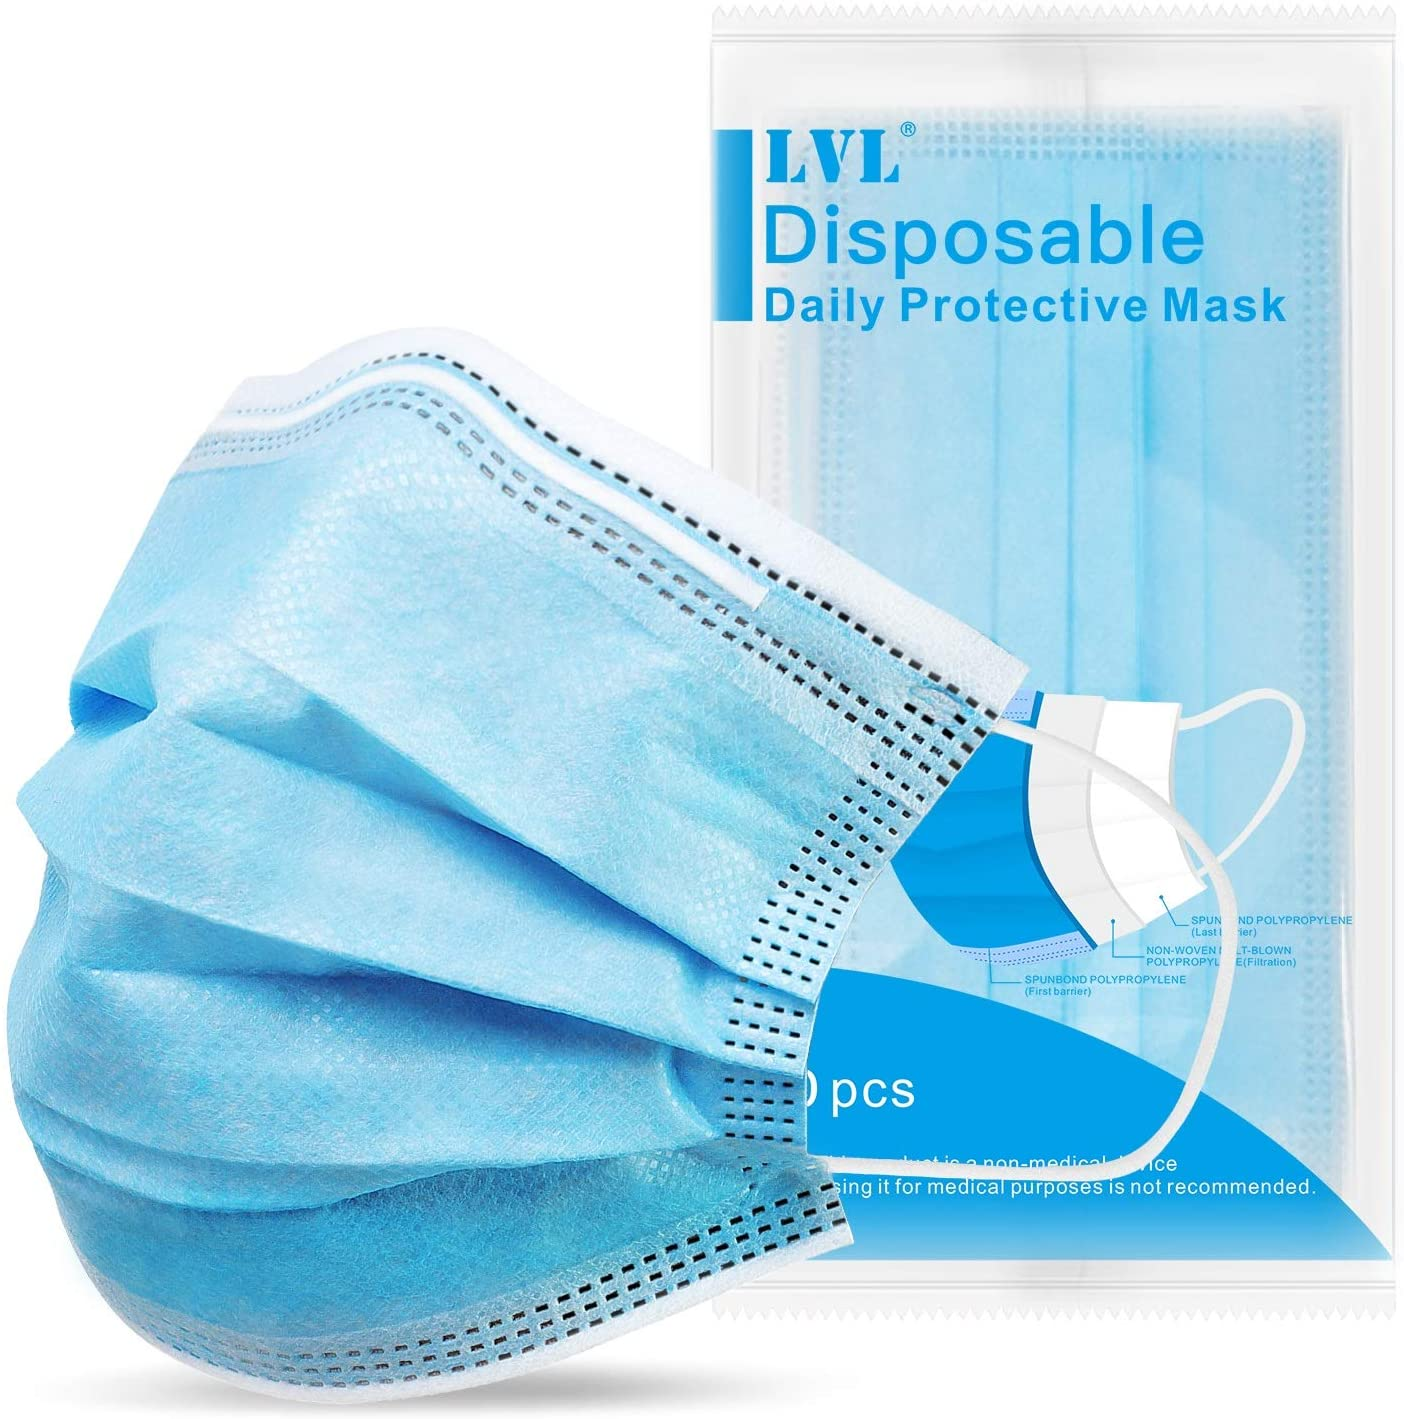 LVL Disposable Face Mask 50PCS, Unisex Protective Mouth Cover with 3-Layer Masks for Outdoor/Indoor, Dust Shield with Elastic Ear Loops Breathable & Comfortable Filter, 5 Packs, 50 PCS